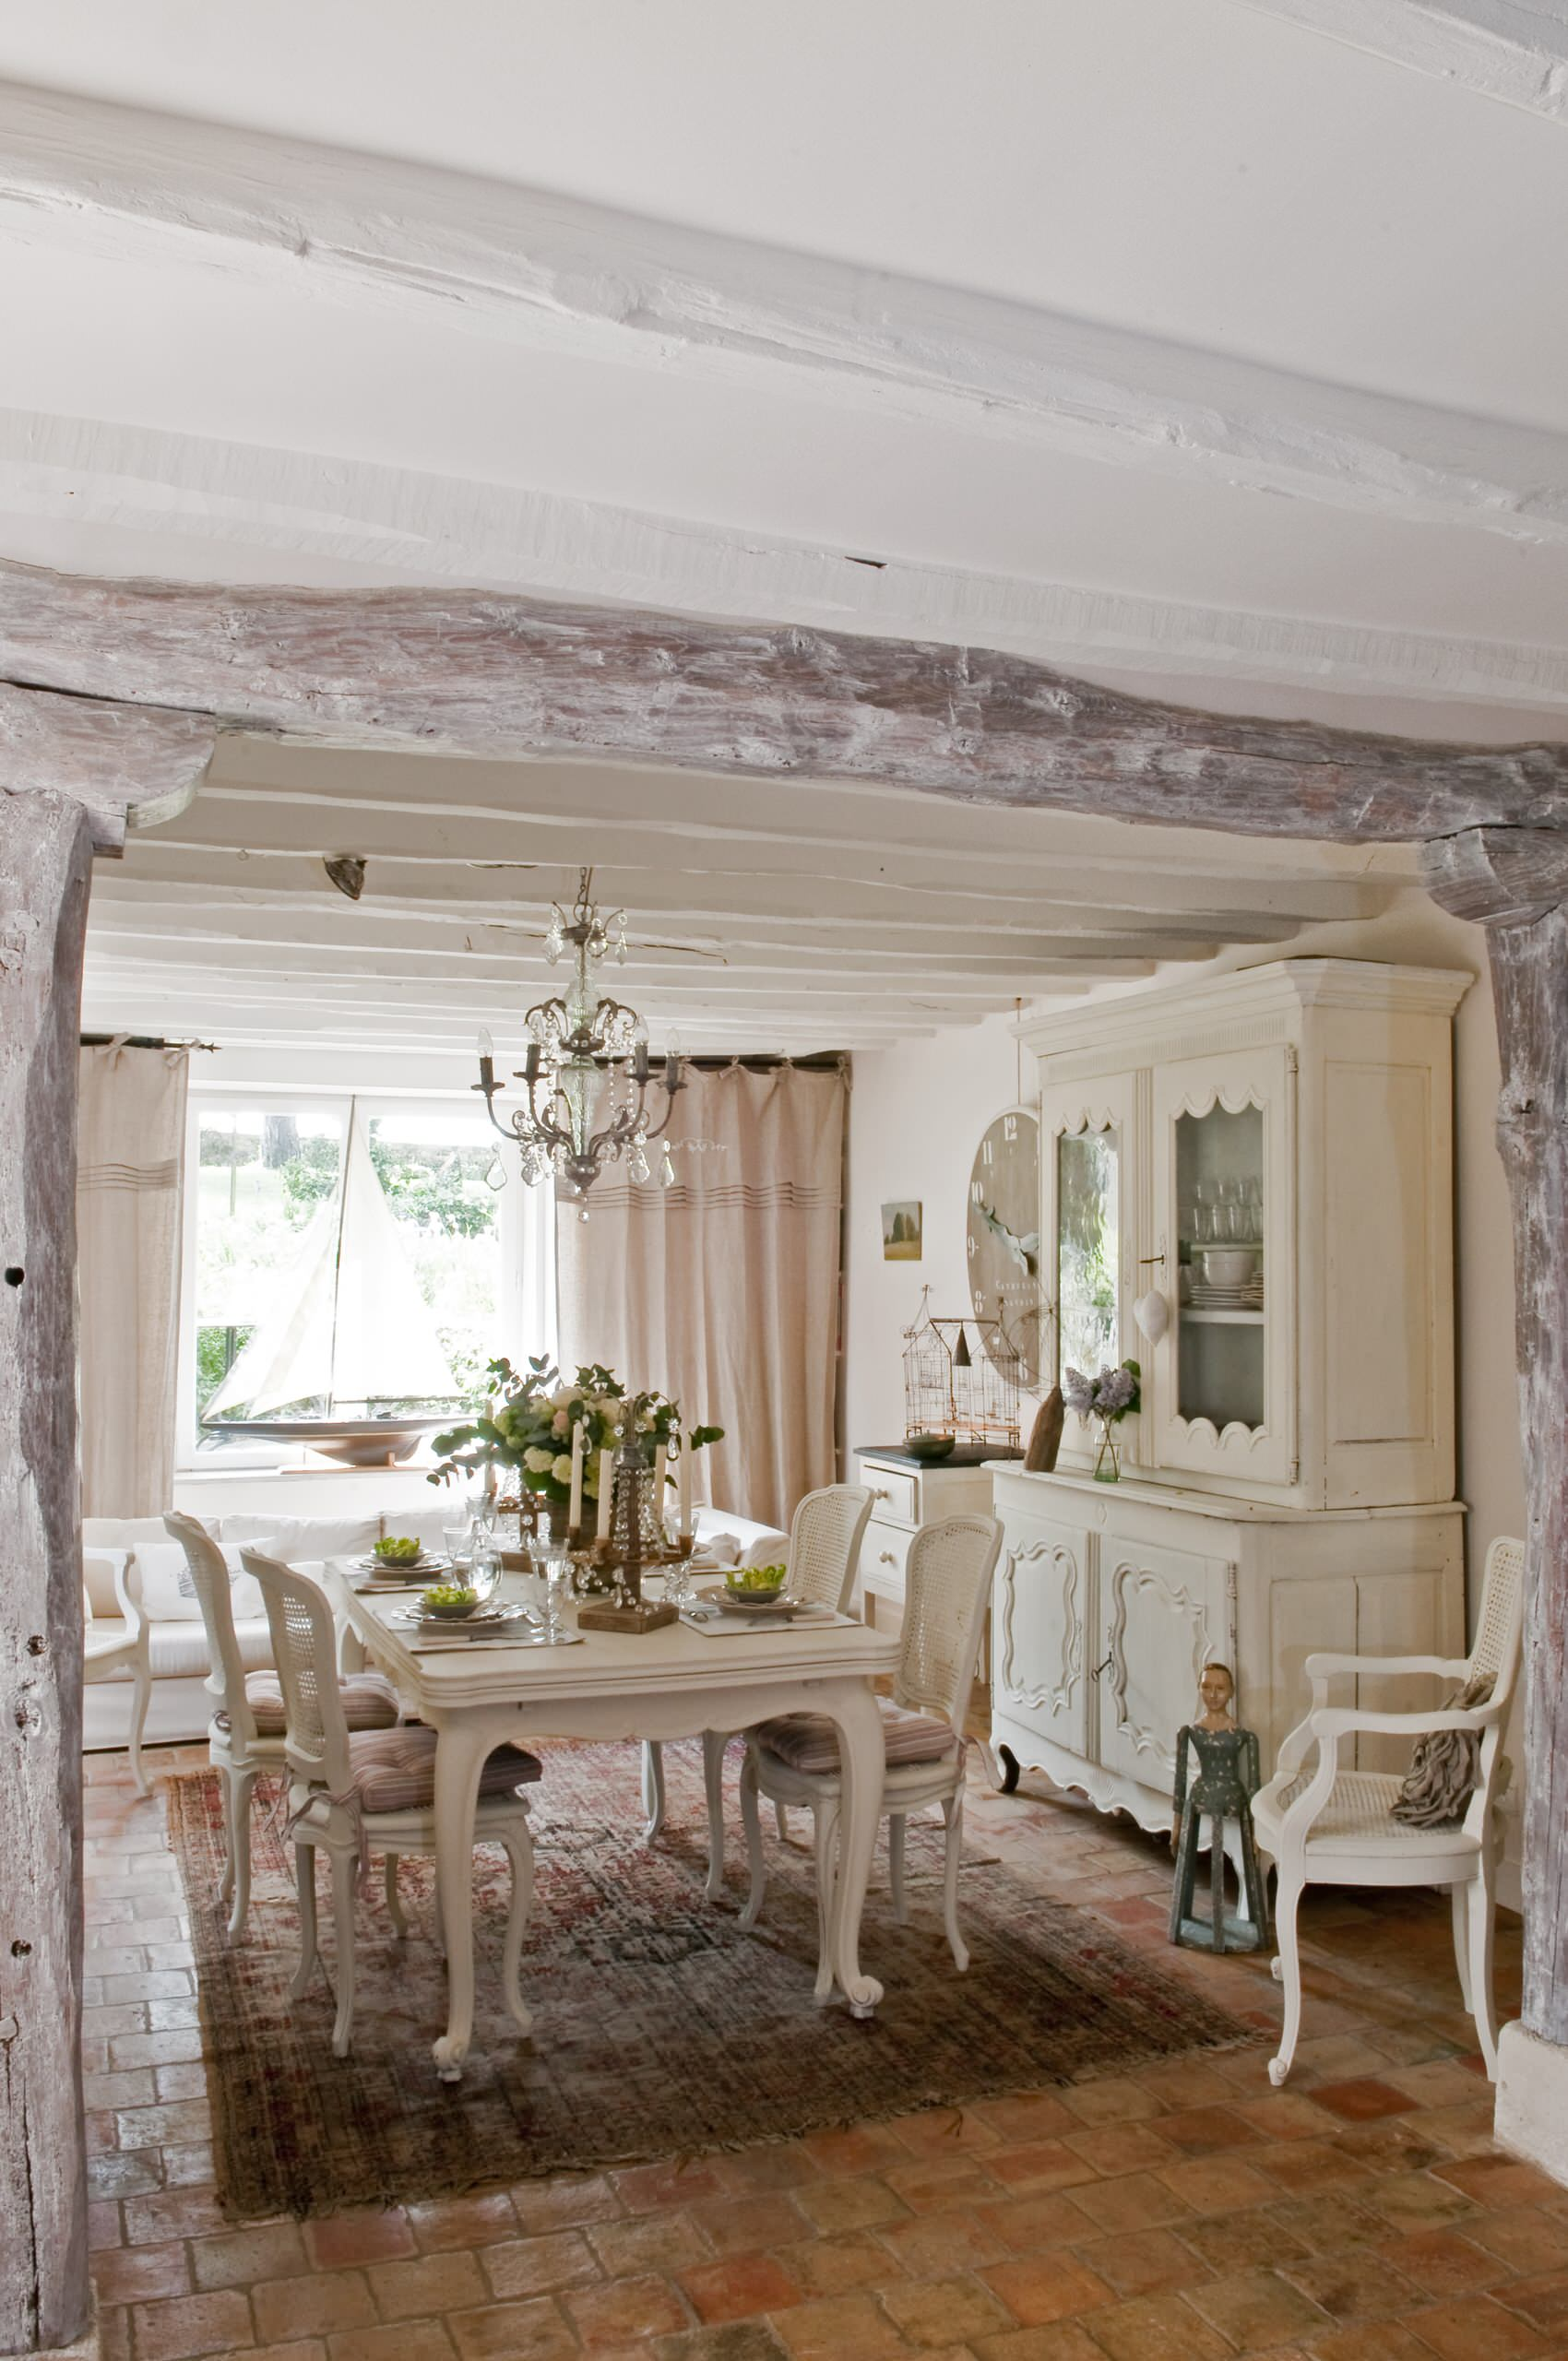 75 Beautiful French Country Dining Room Pictures Ideas February 2021 Houzz